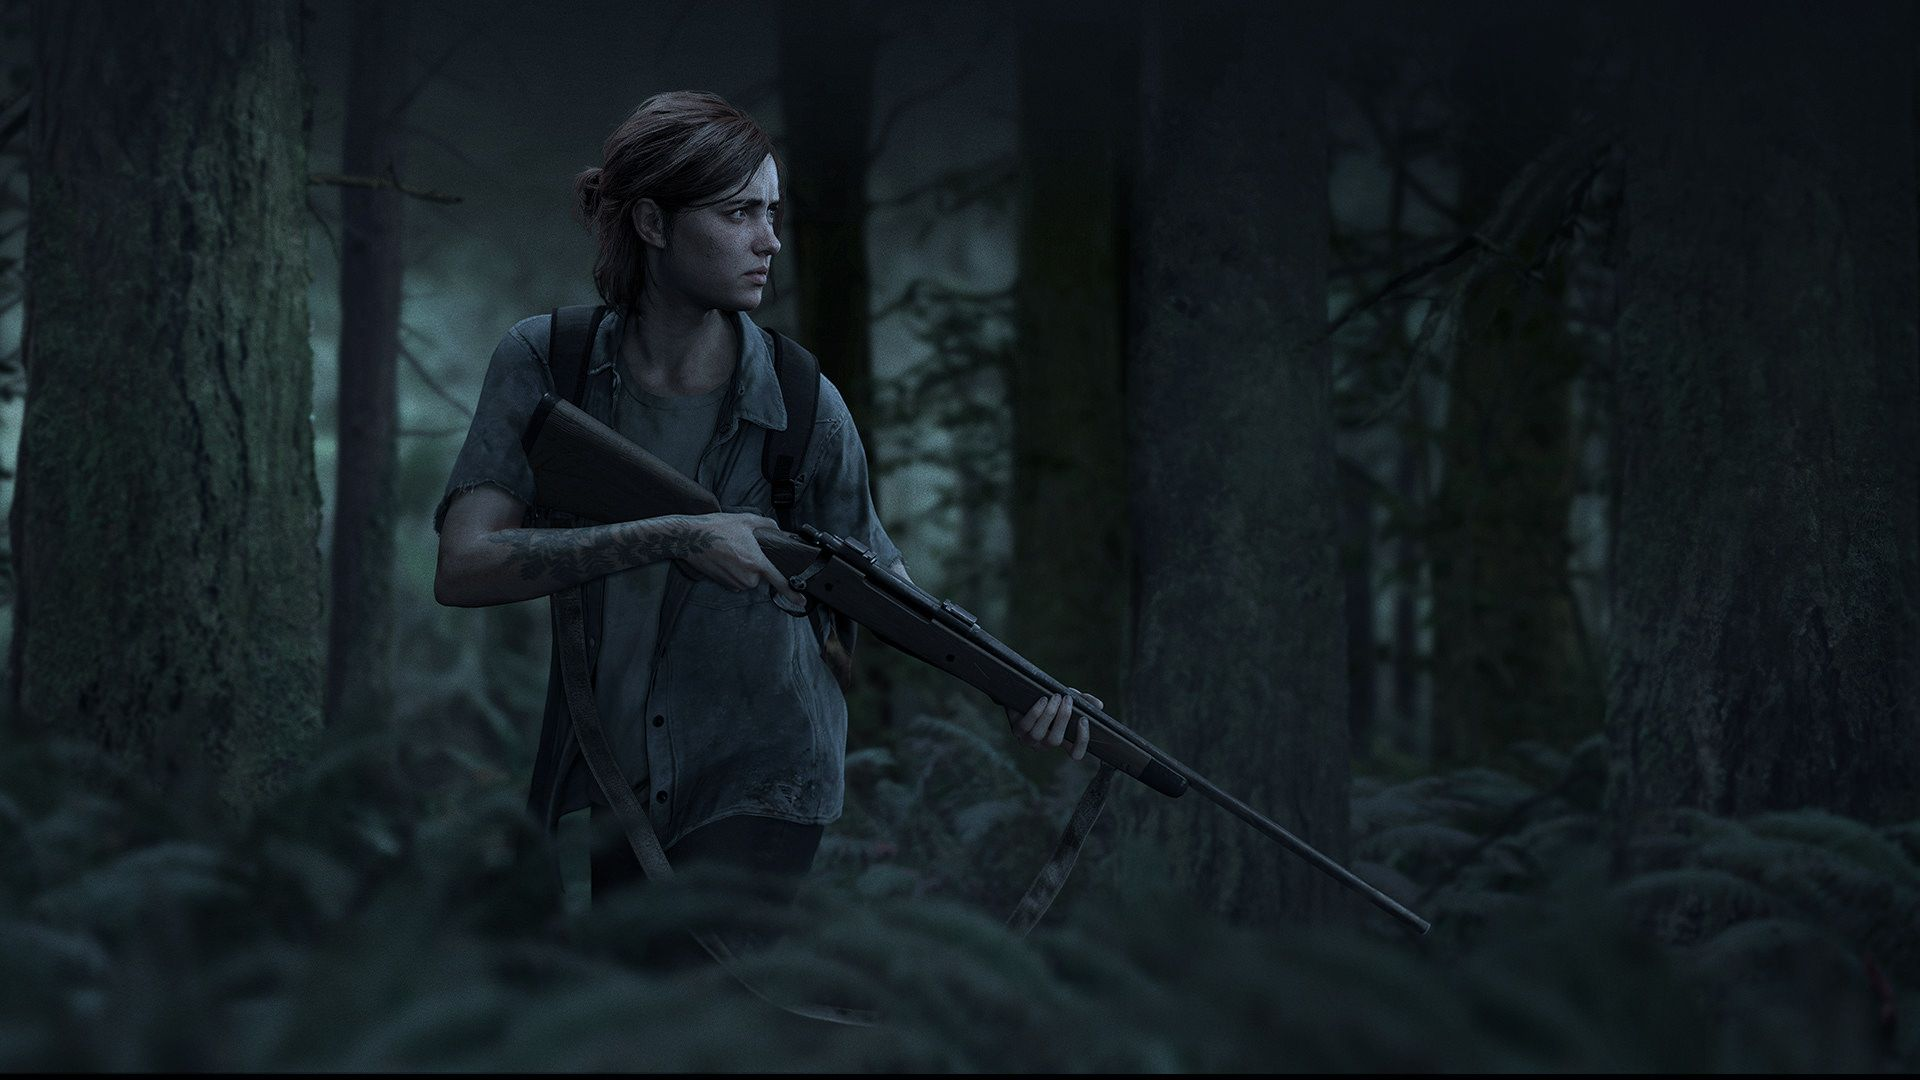 1920x1080] The Last of Us 2 Ellie Wallpaper Need trendy iPhone7 1920x1080